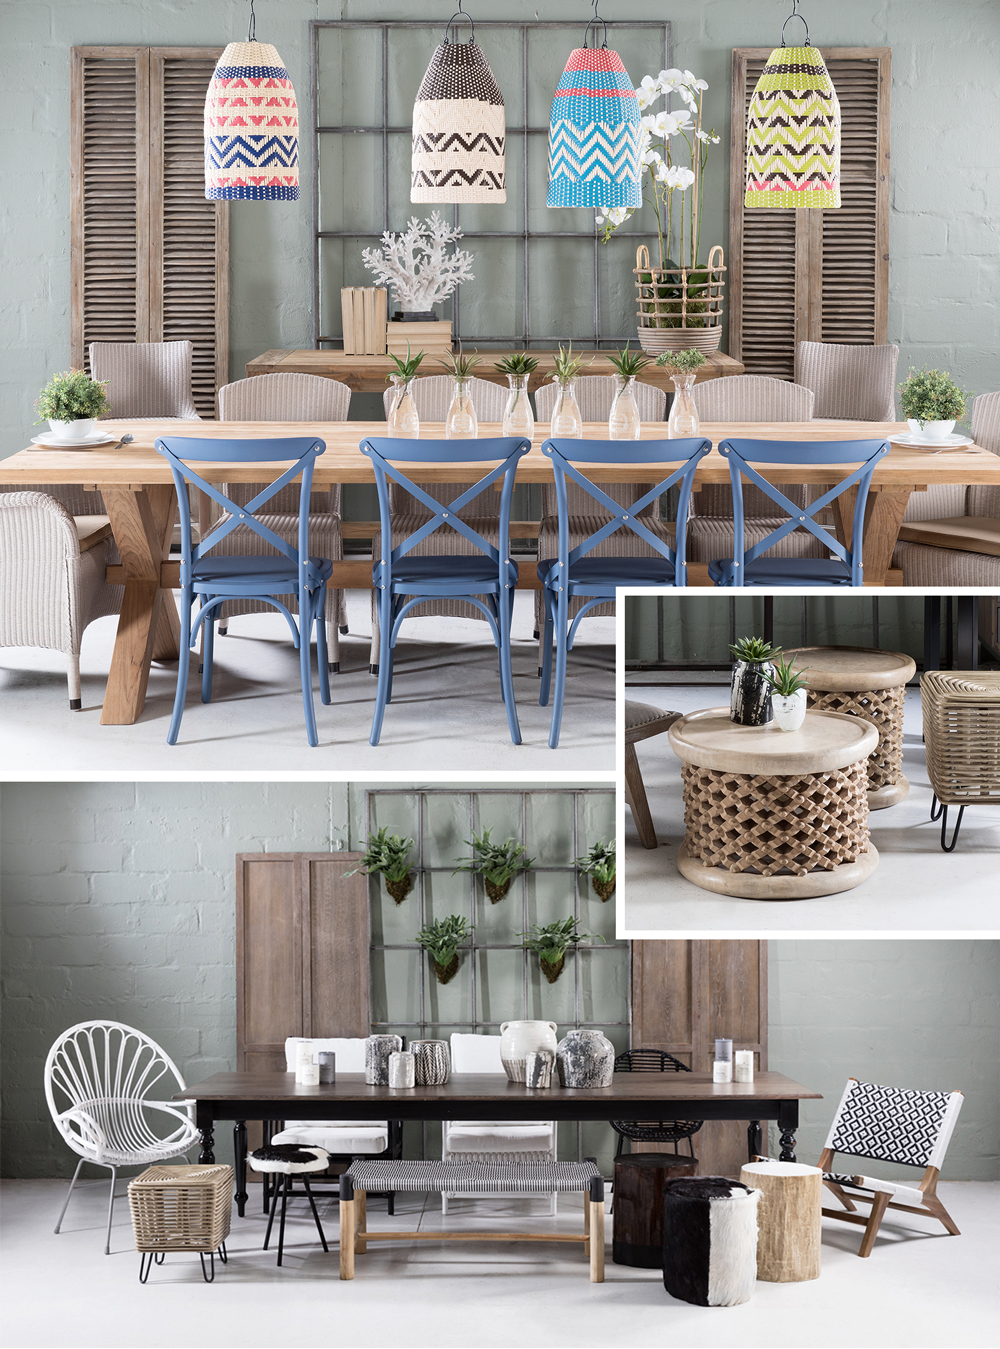 6 interior trends worth trying in 2018 | Block & Chisel